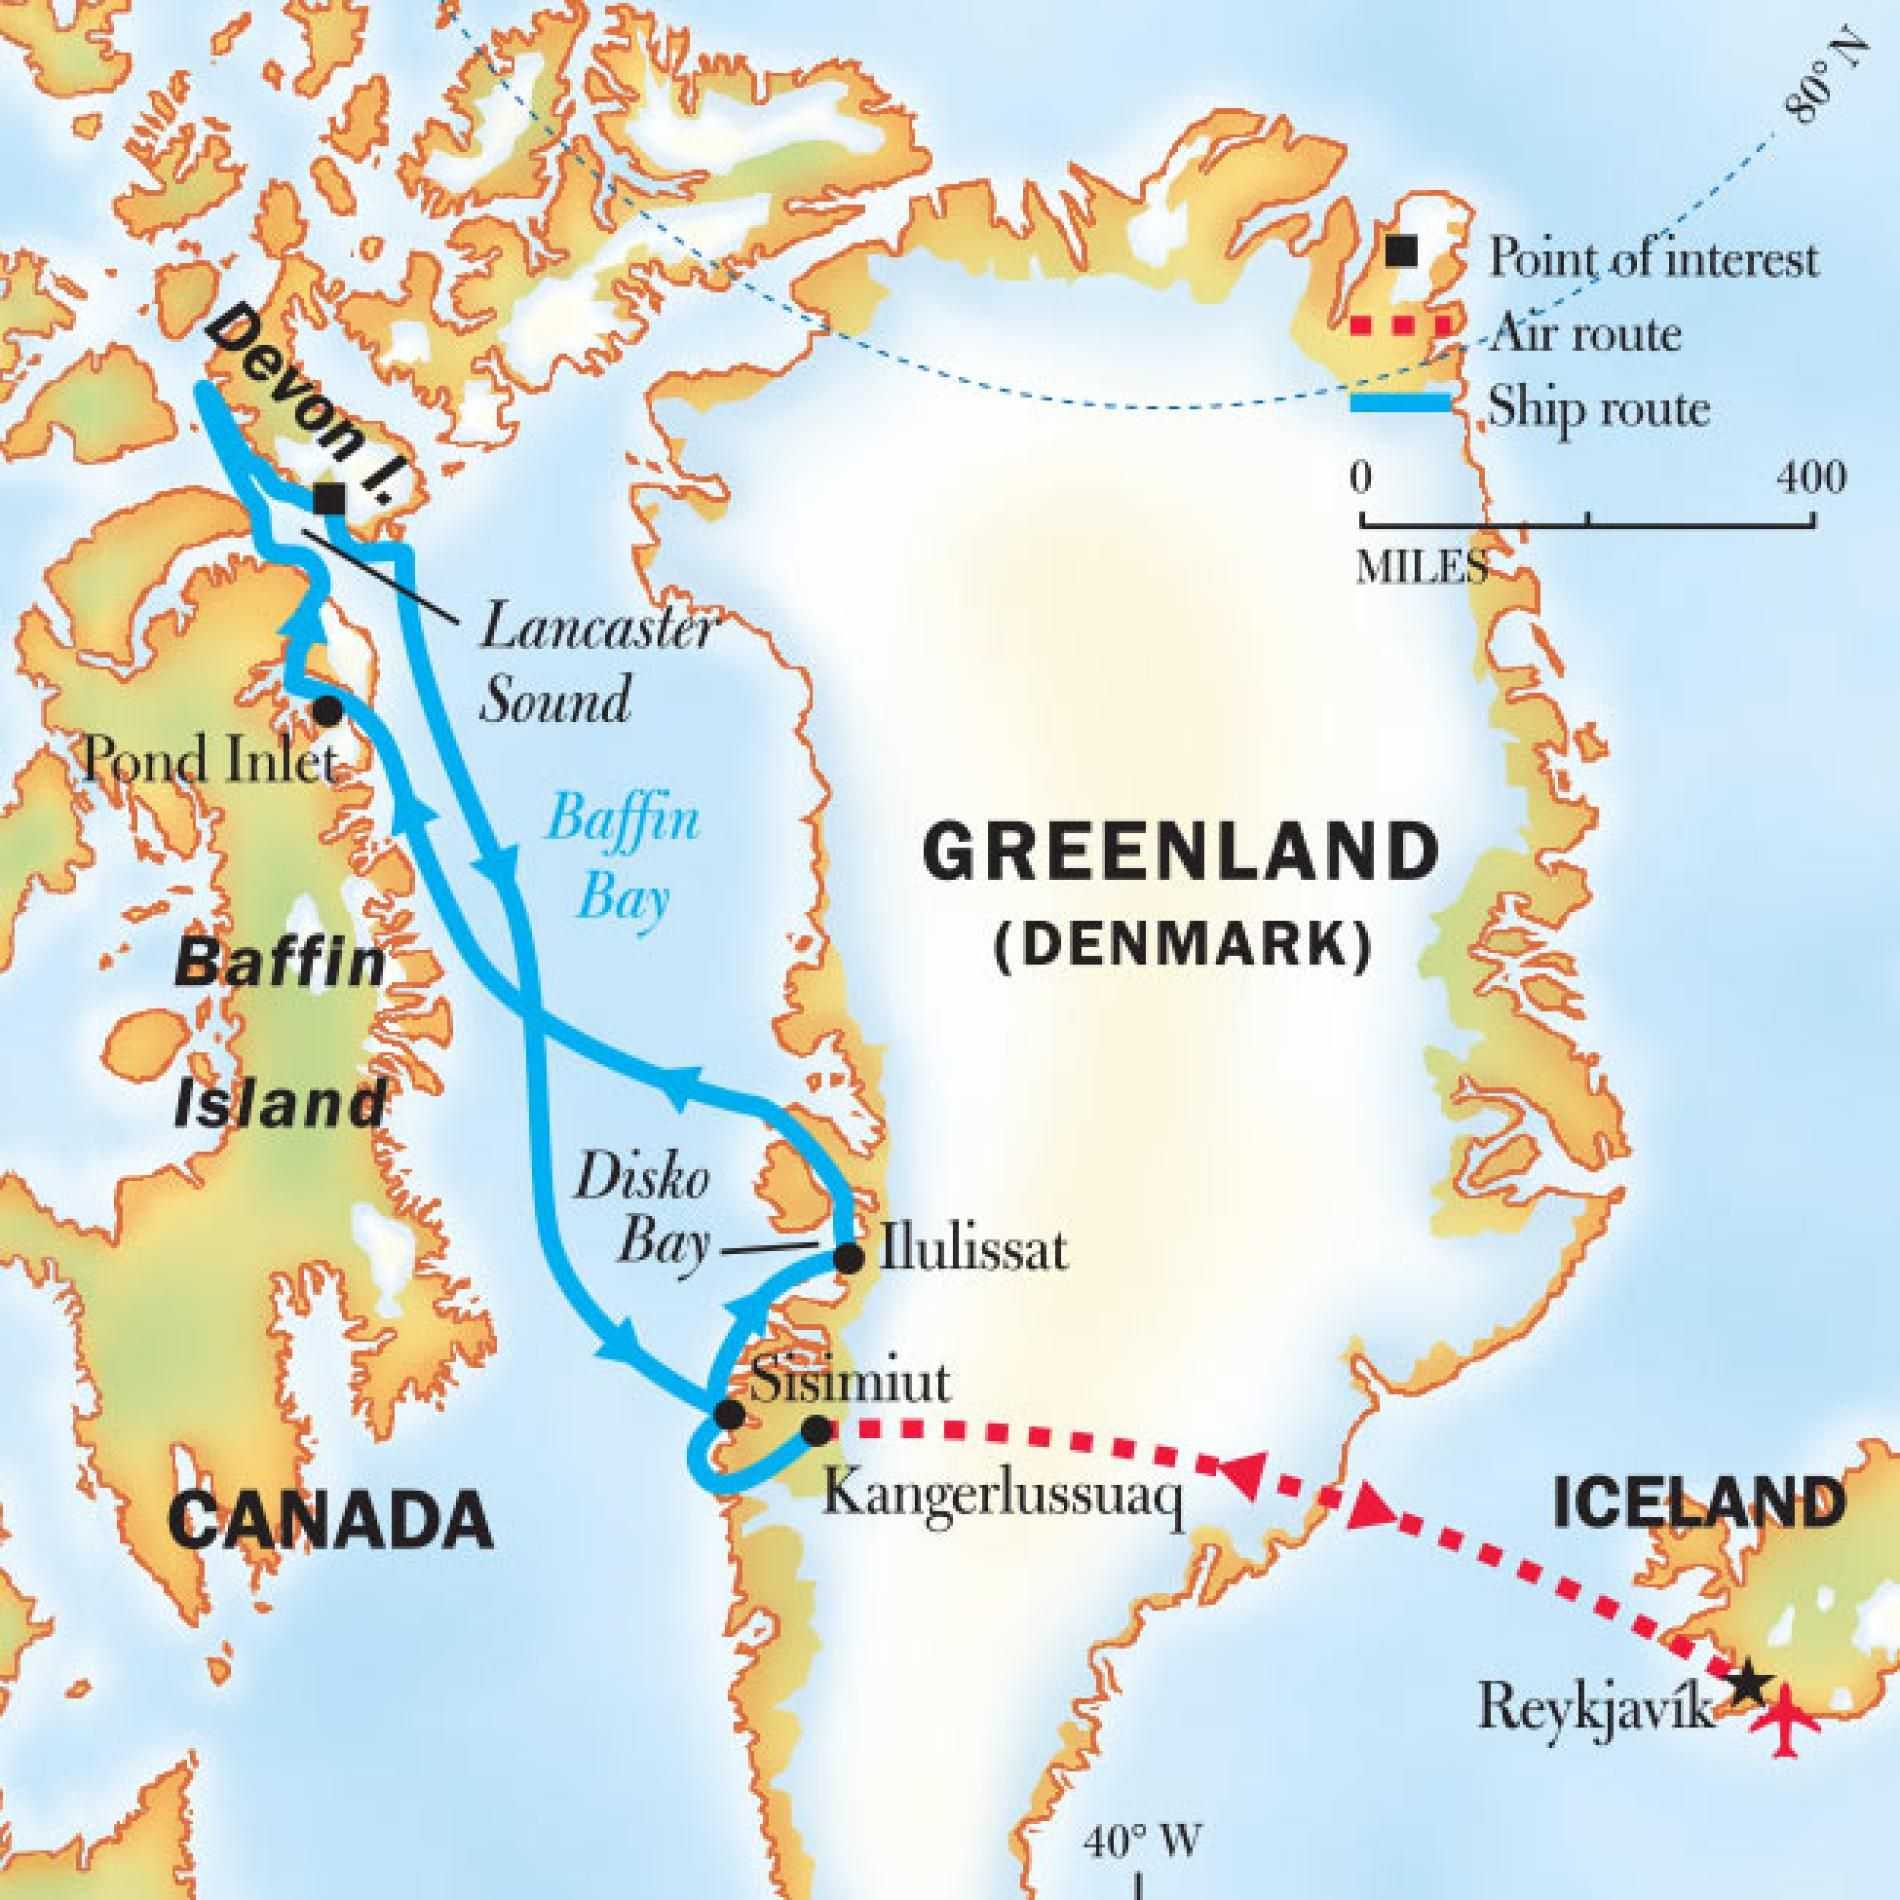 Map Of Canada Greenland And Iceland.Greenland To Arctic Canada Northwest Passage Cruise National